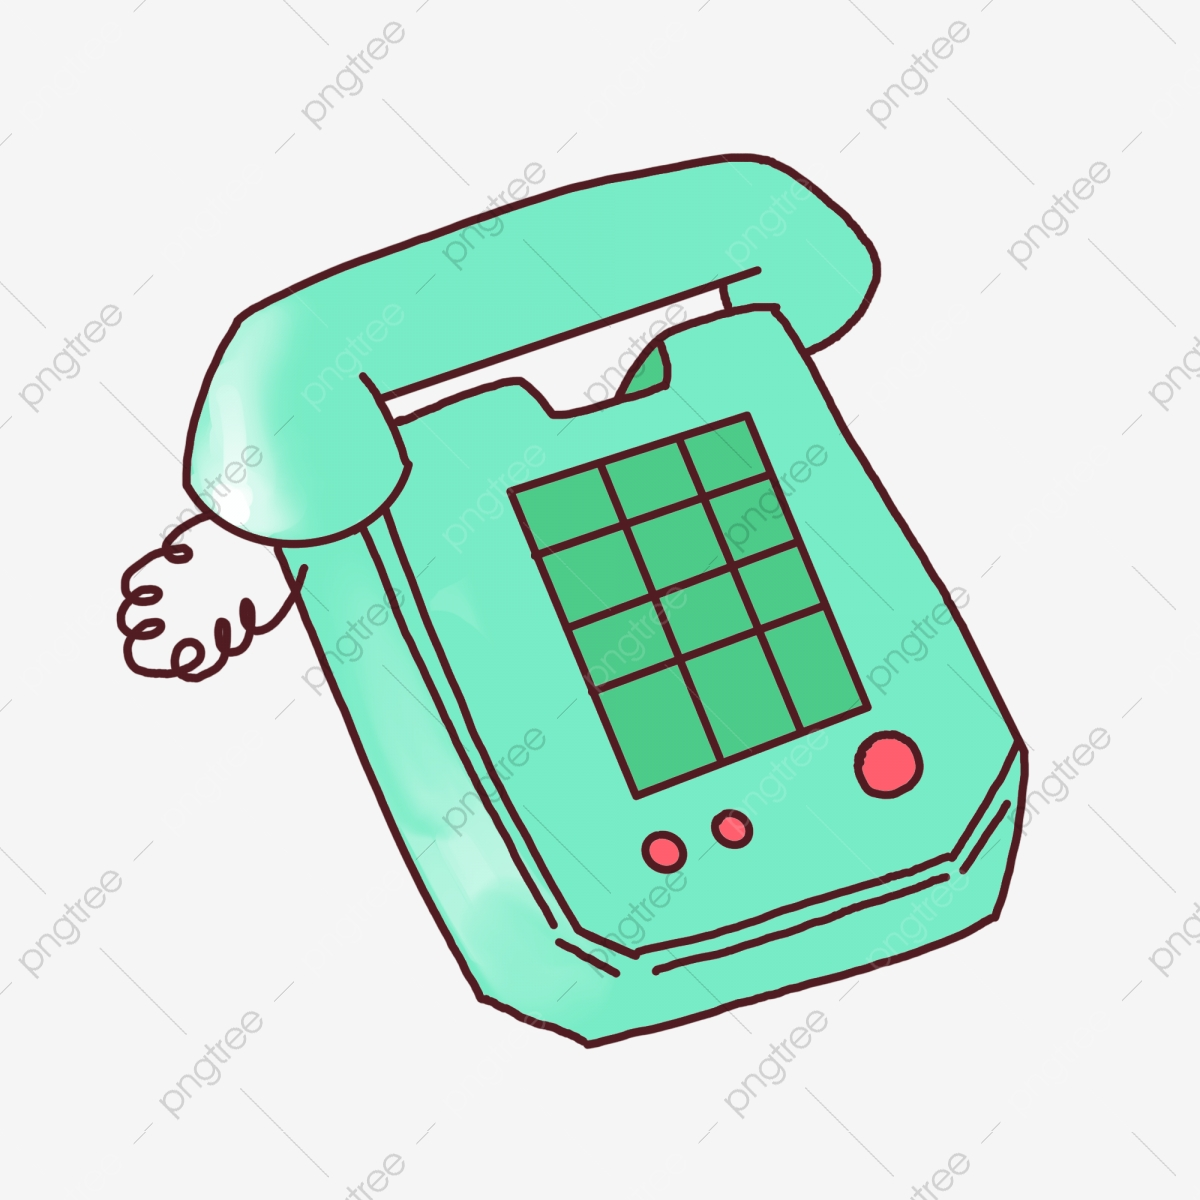 green telephone home landline red button png transparent clipart image and psd file for free download pngtree